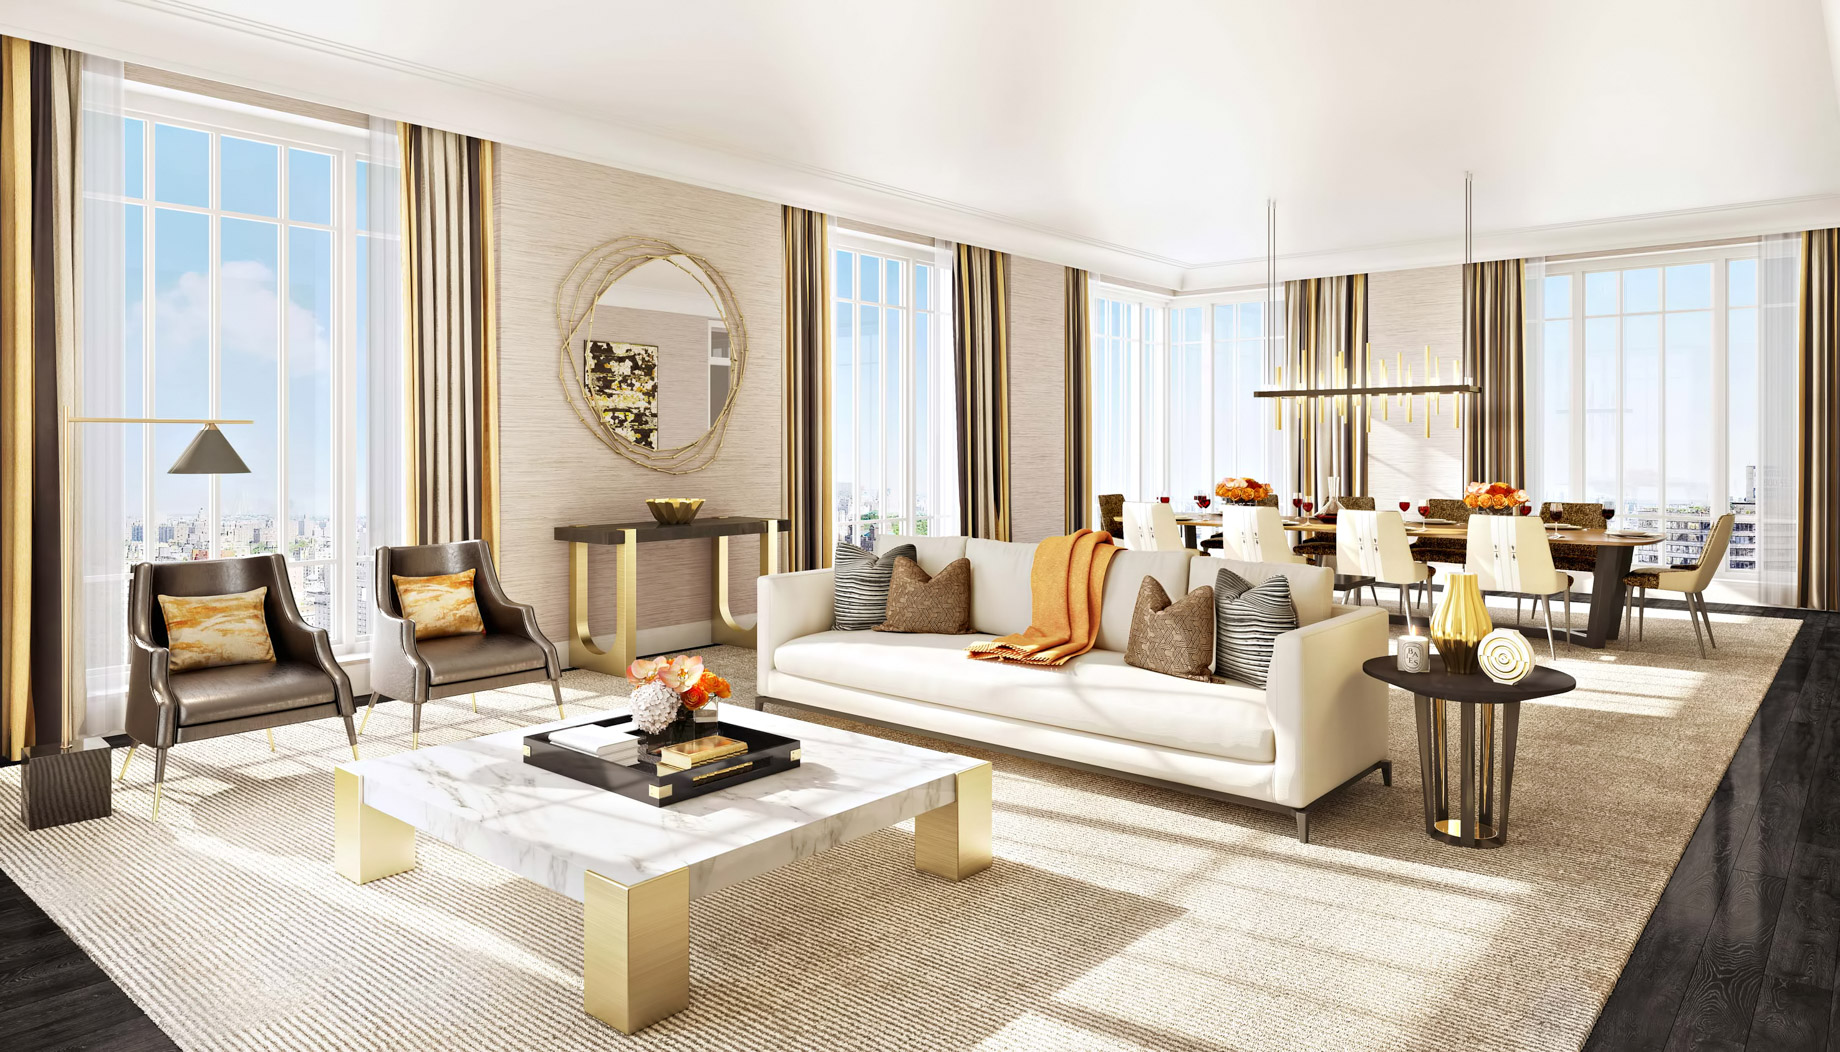 The Kent Upper East Side Luxury Condo Apartments - 200 E 95th St, New York, NY, USA